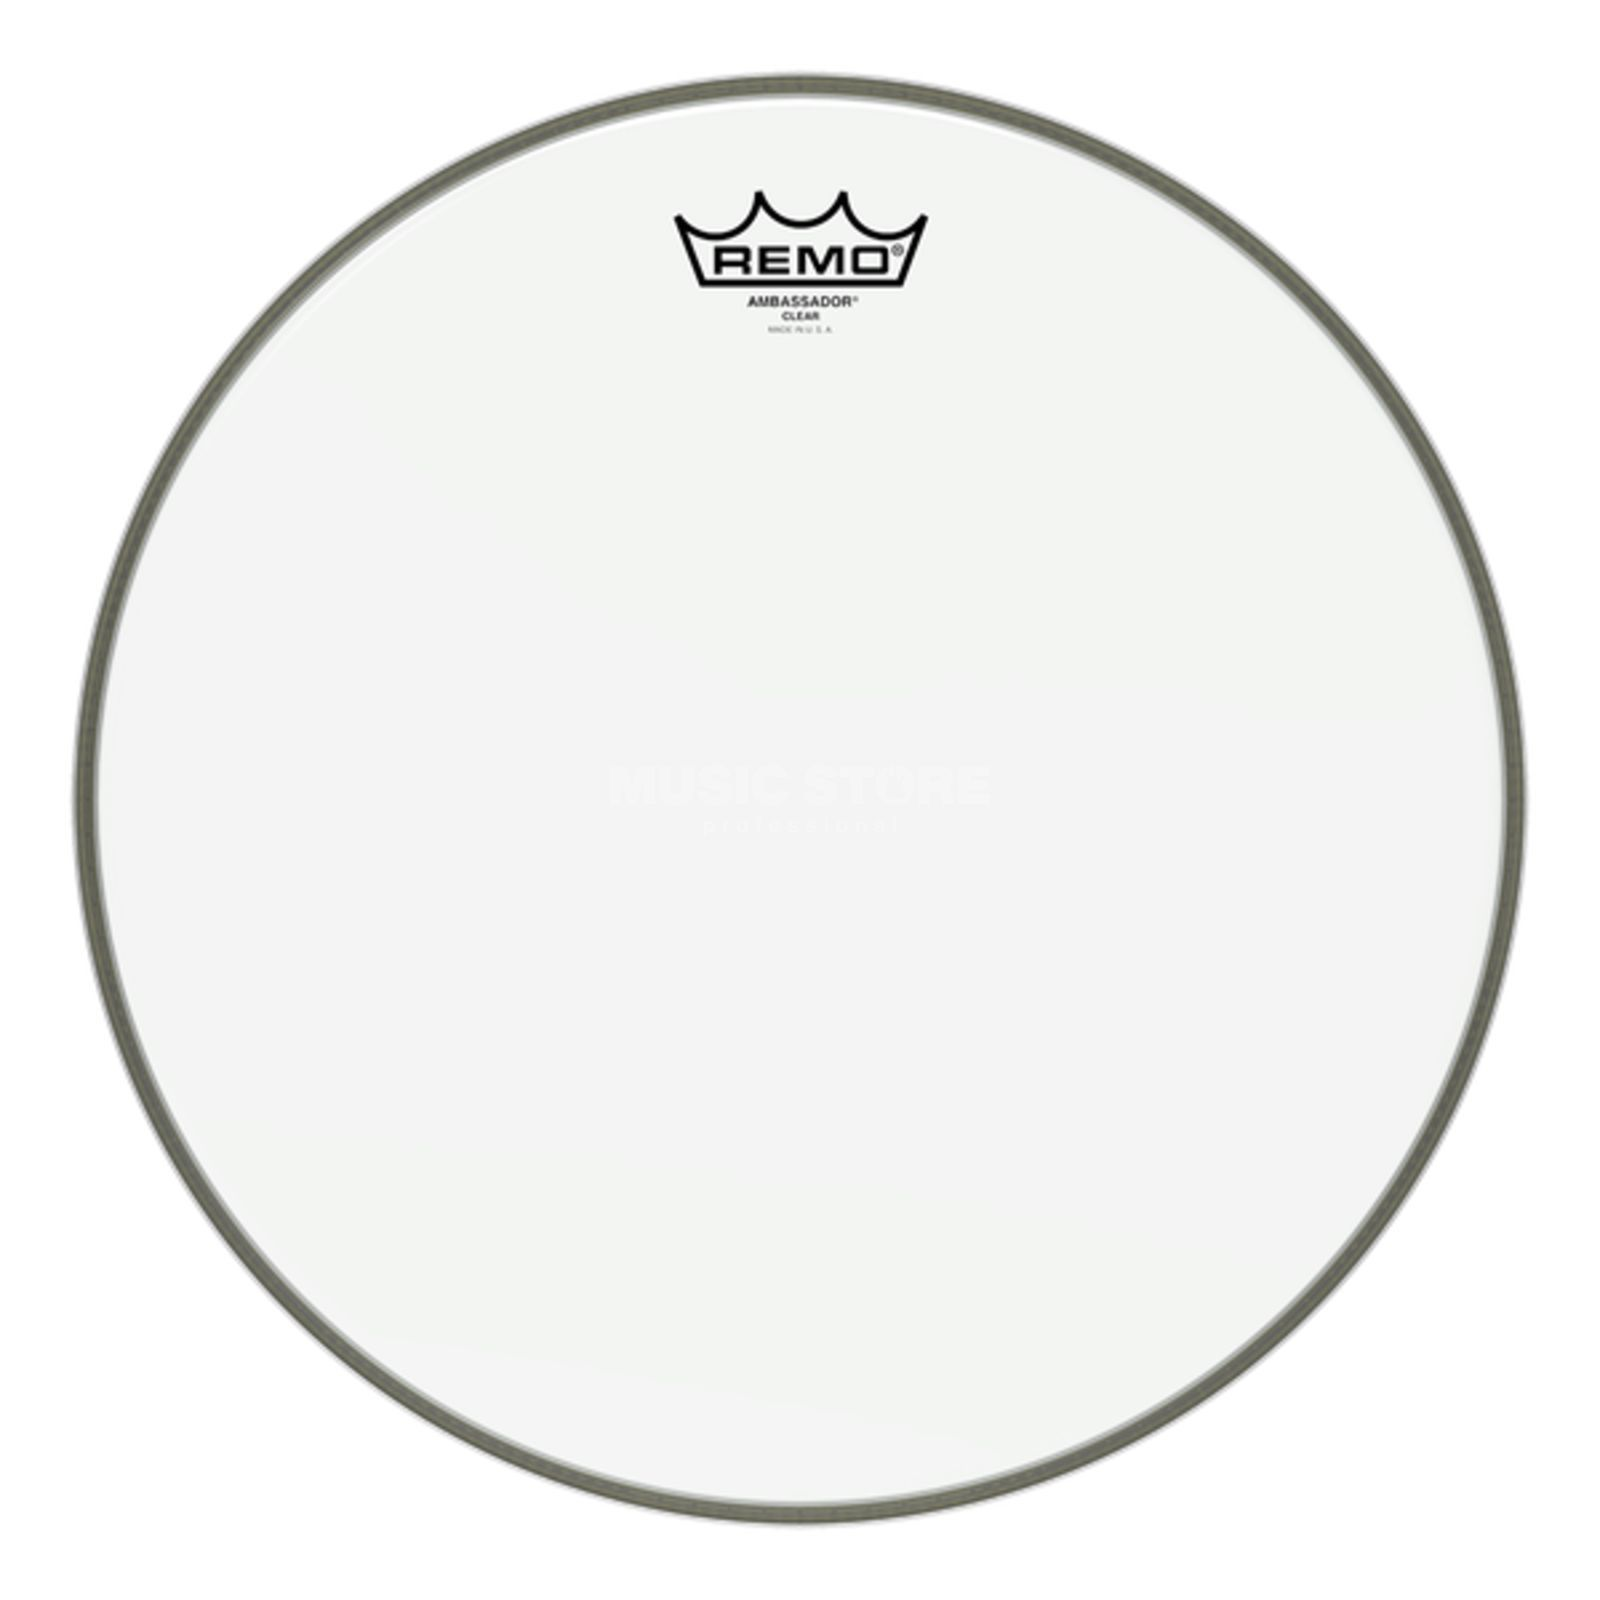 "Remo Ambassador Clear 12"", Tom Batter/Reso Product Image"